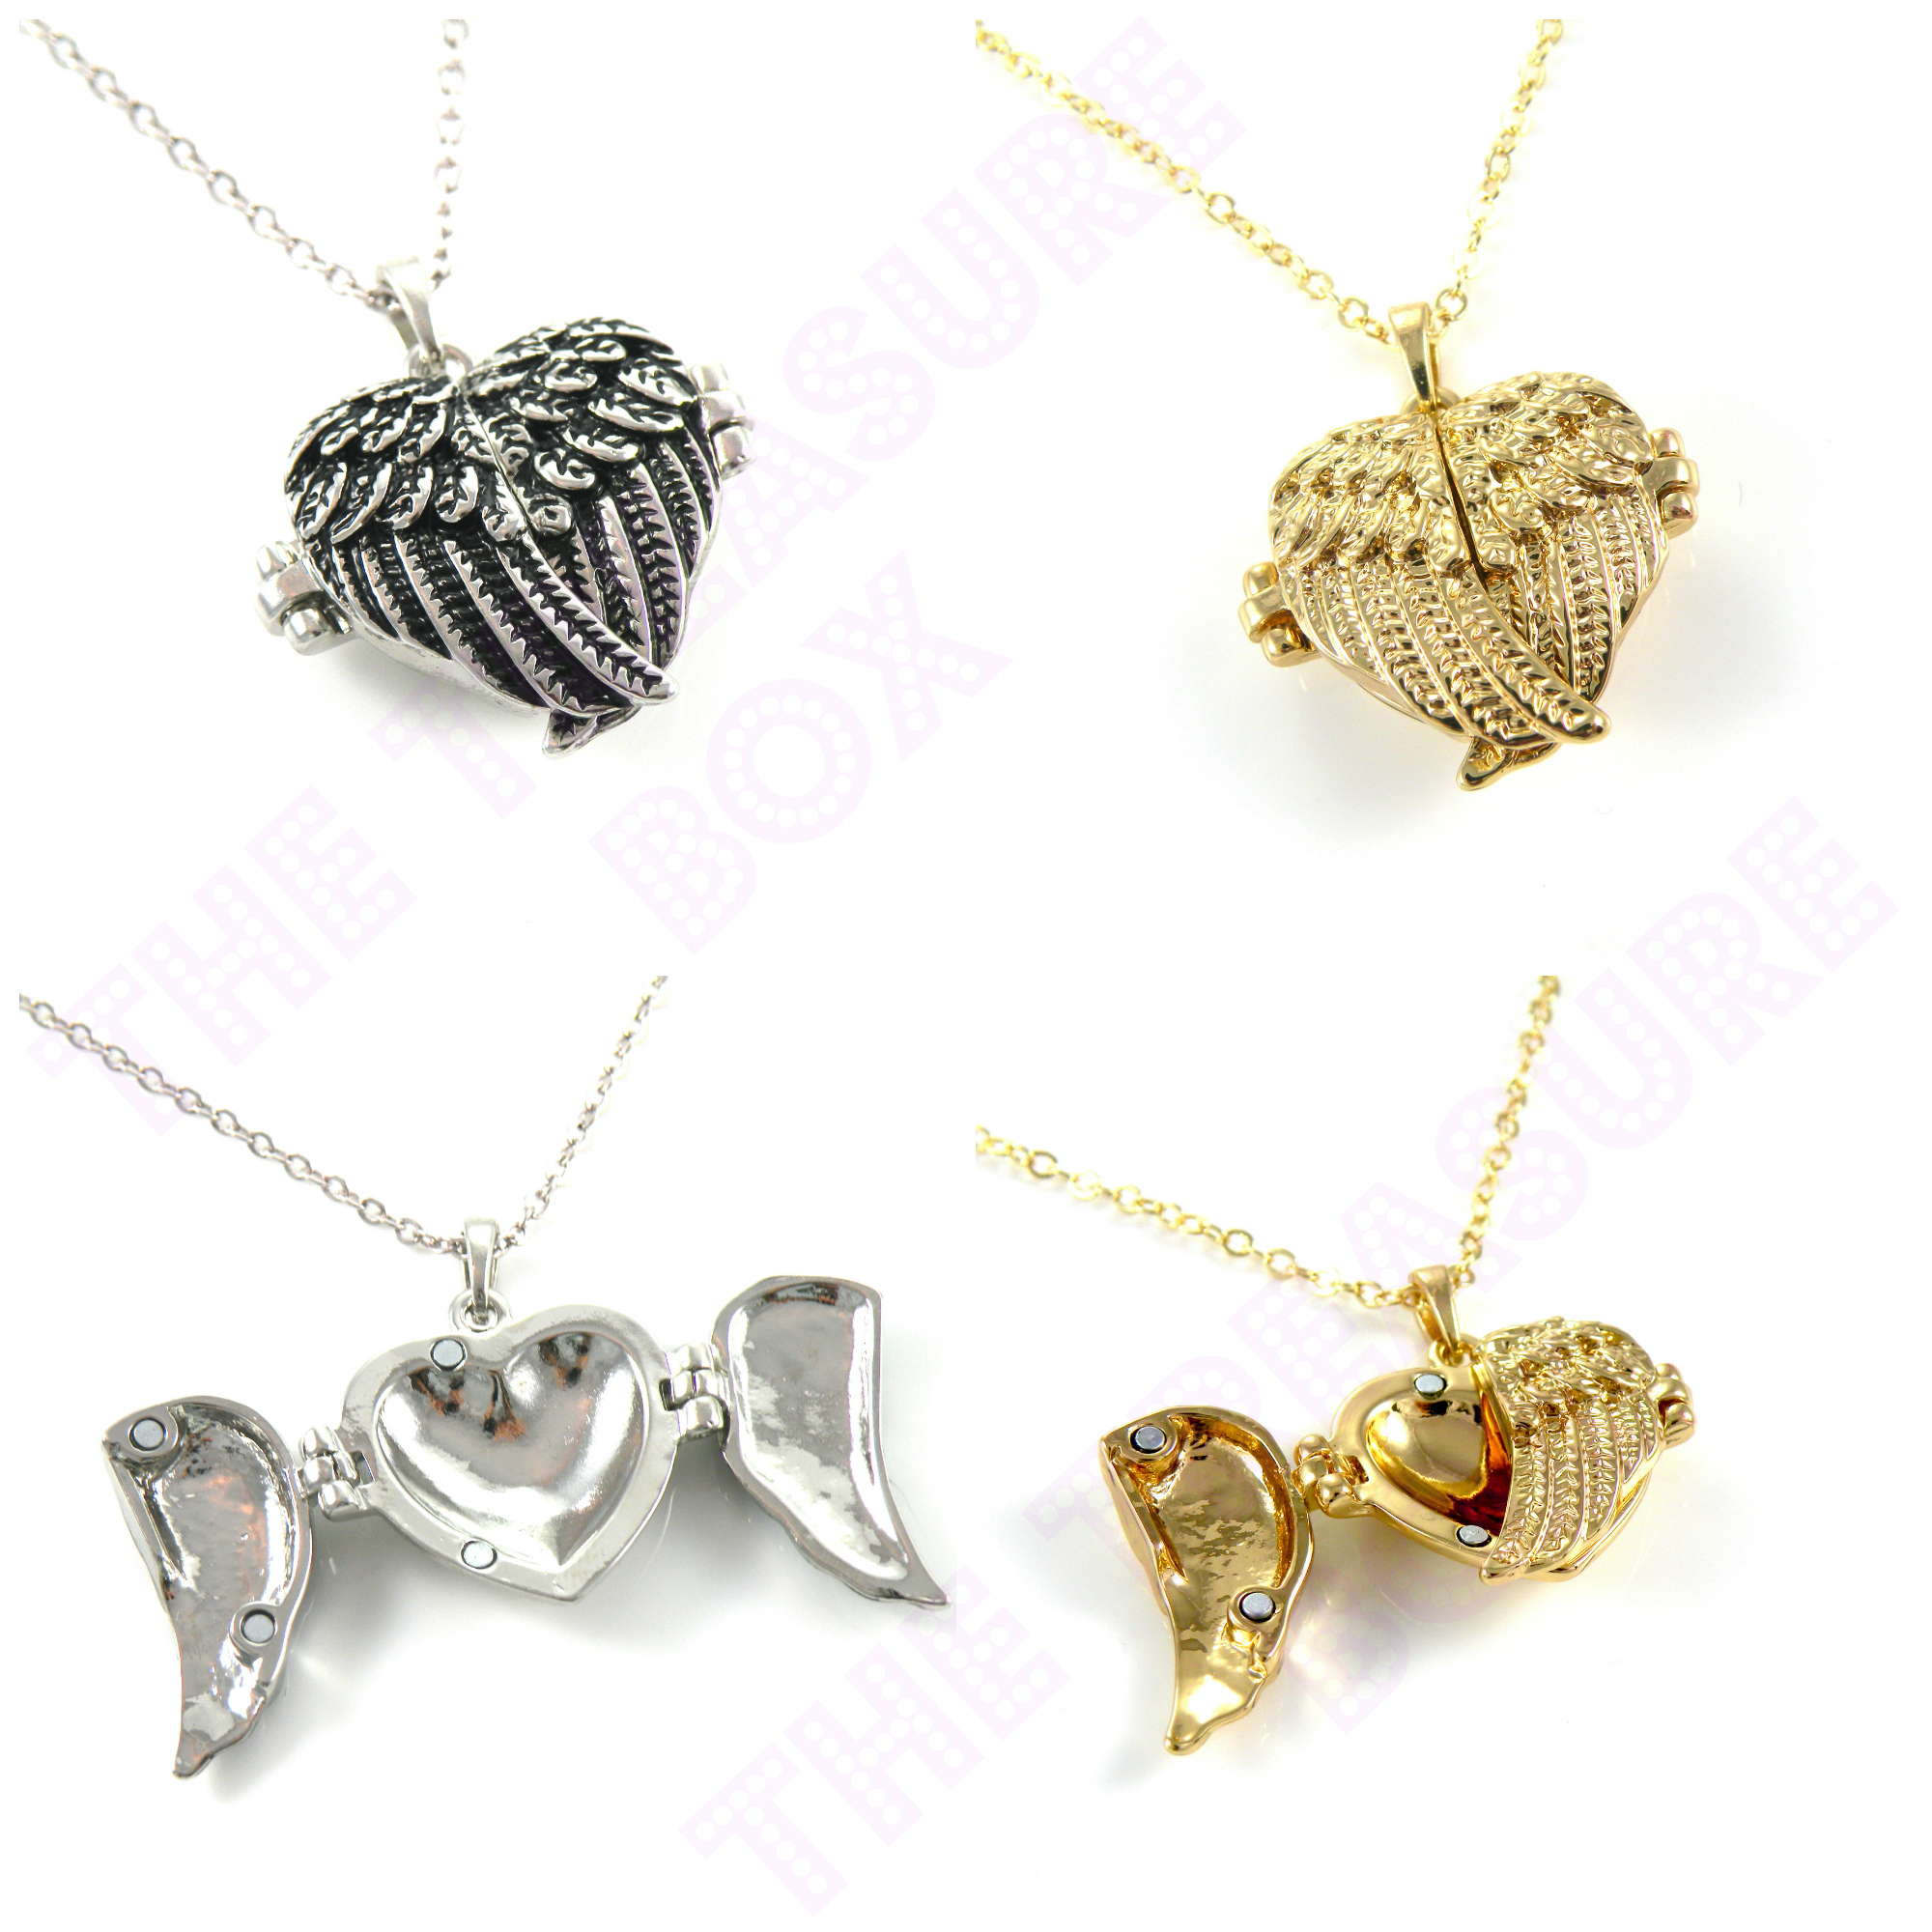 ml locket necklace heart pendant jewelry photo lagos beloved